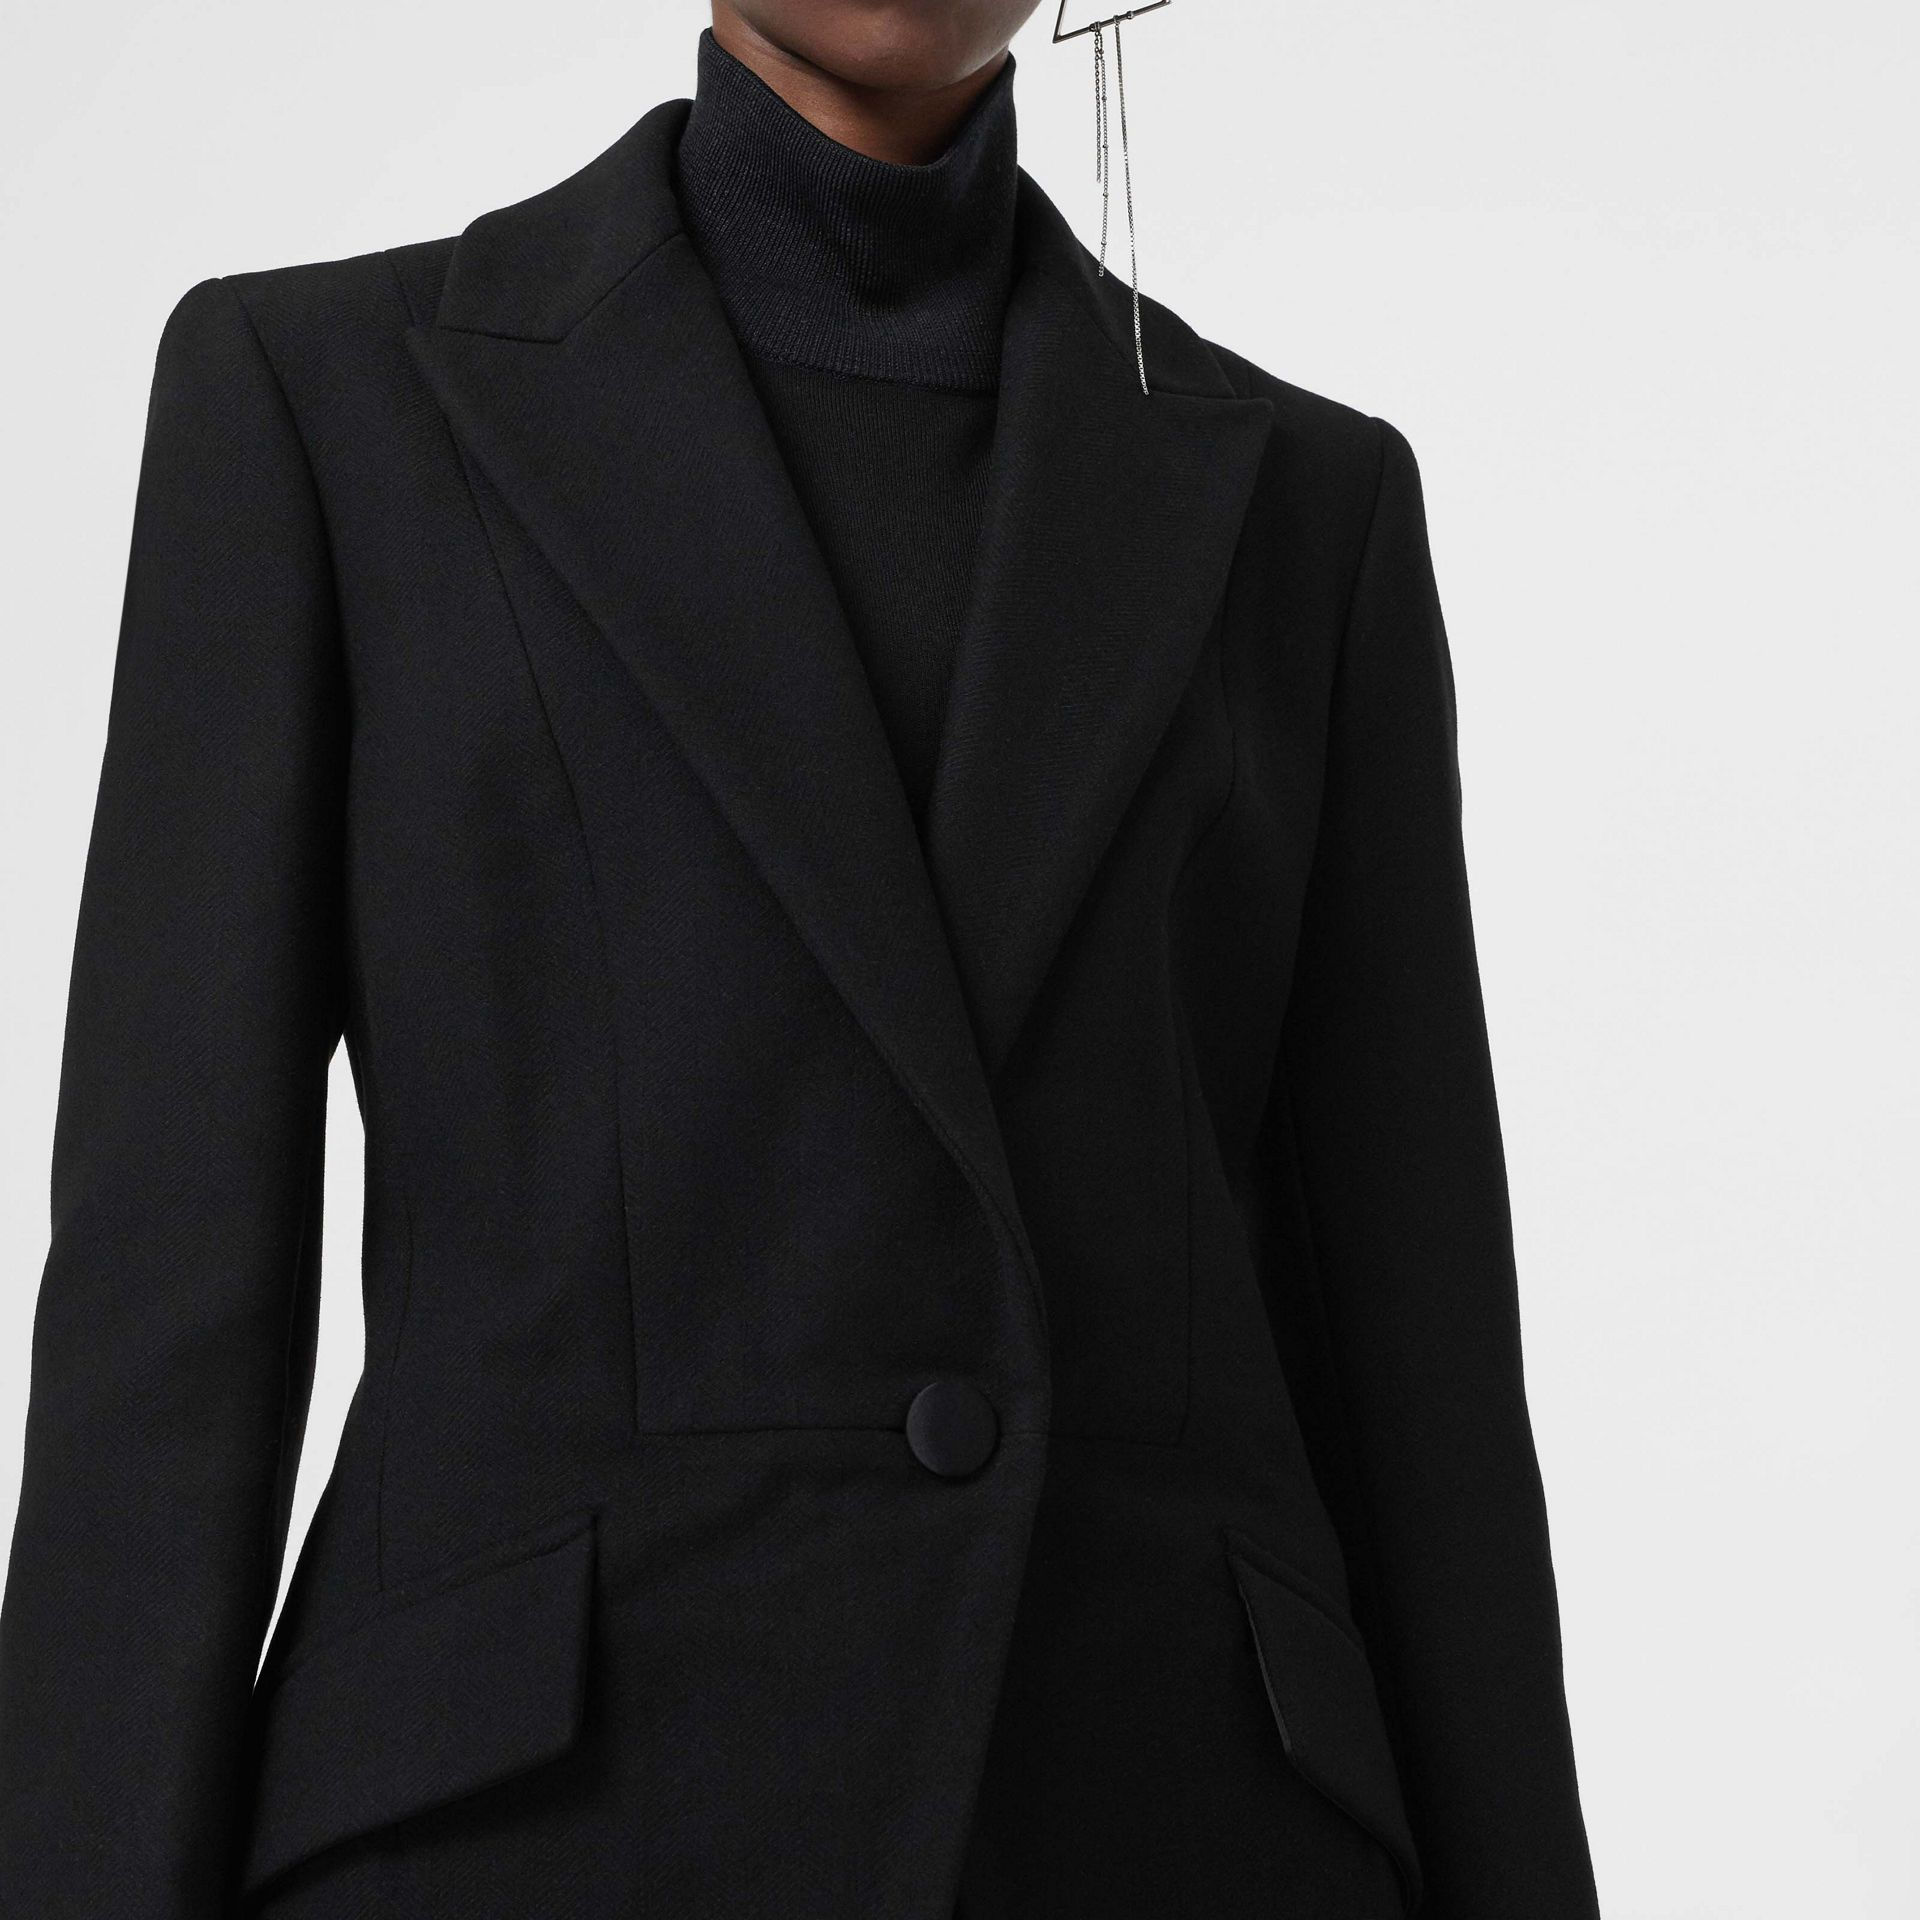 Herringbone Wool Cashmere Blend Tailored Jacket in Black - Women | Burberry United States - gallery image 4